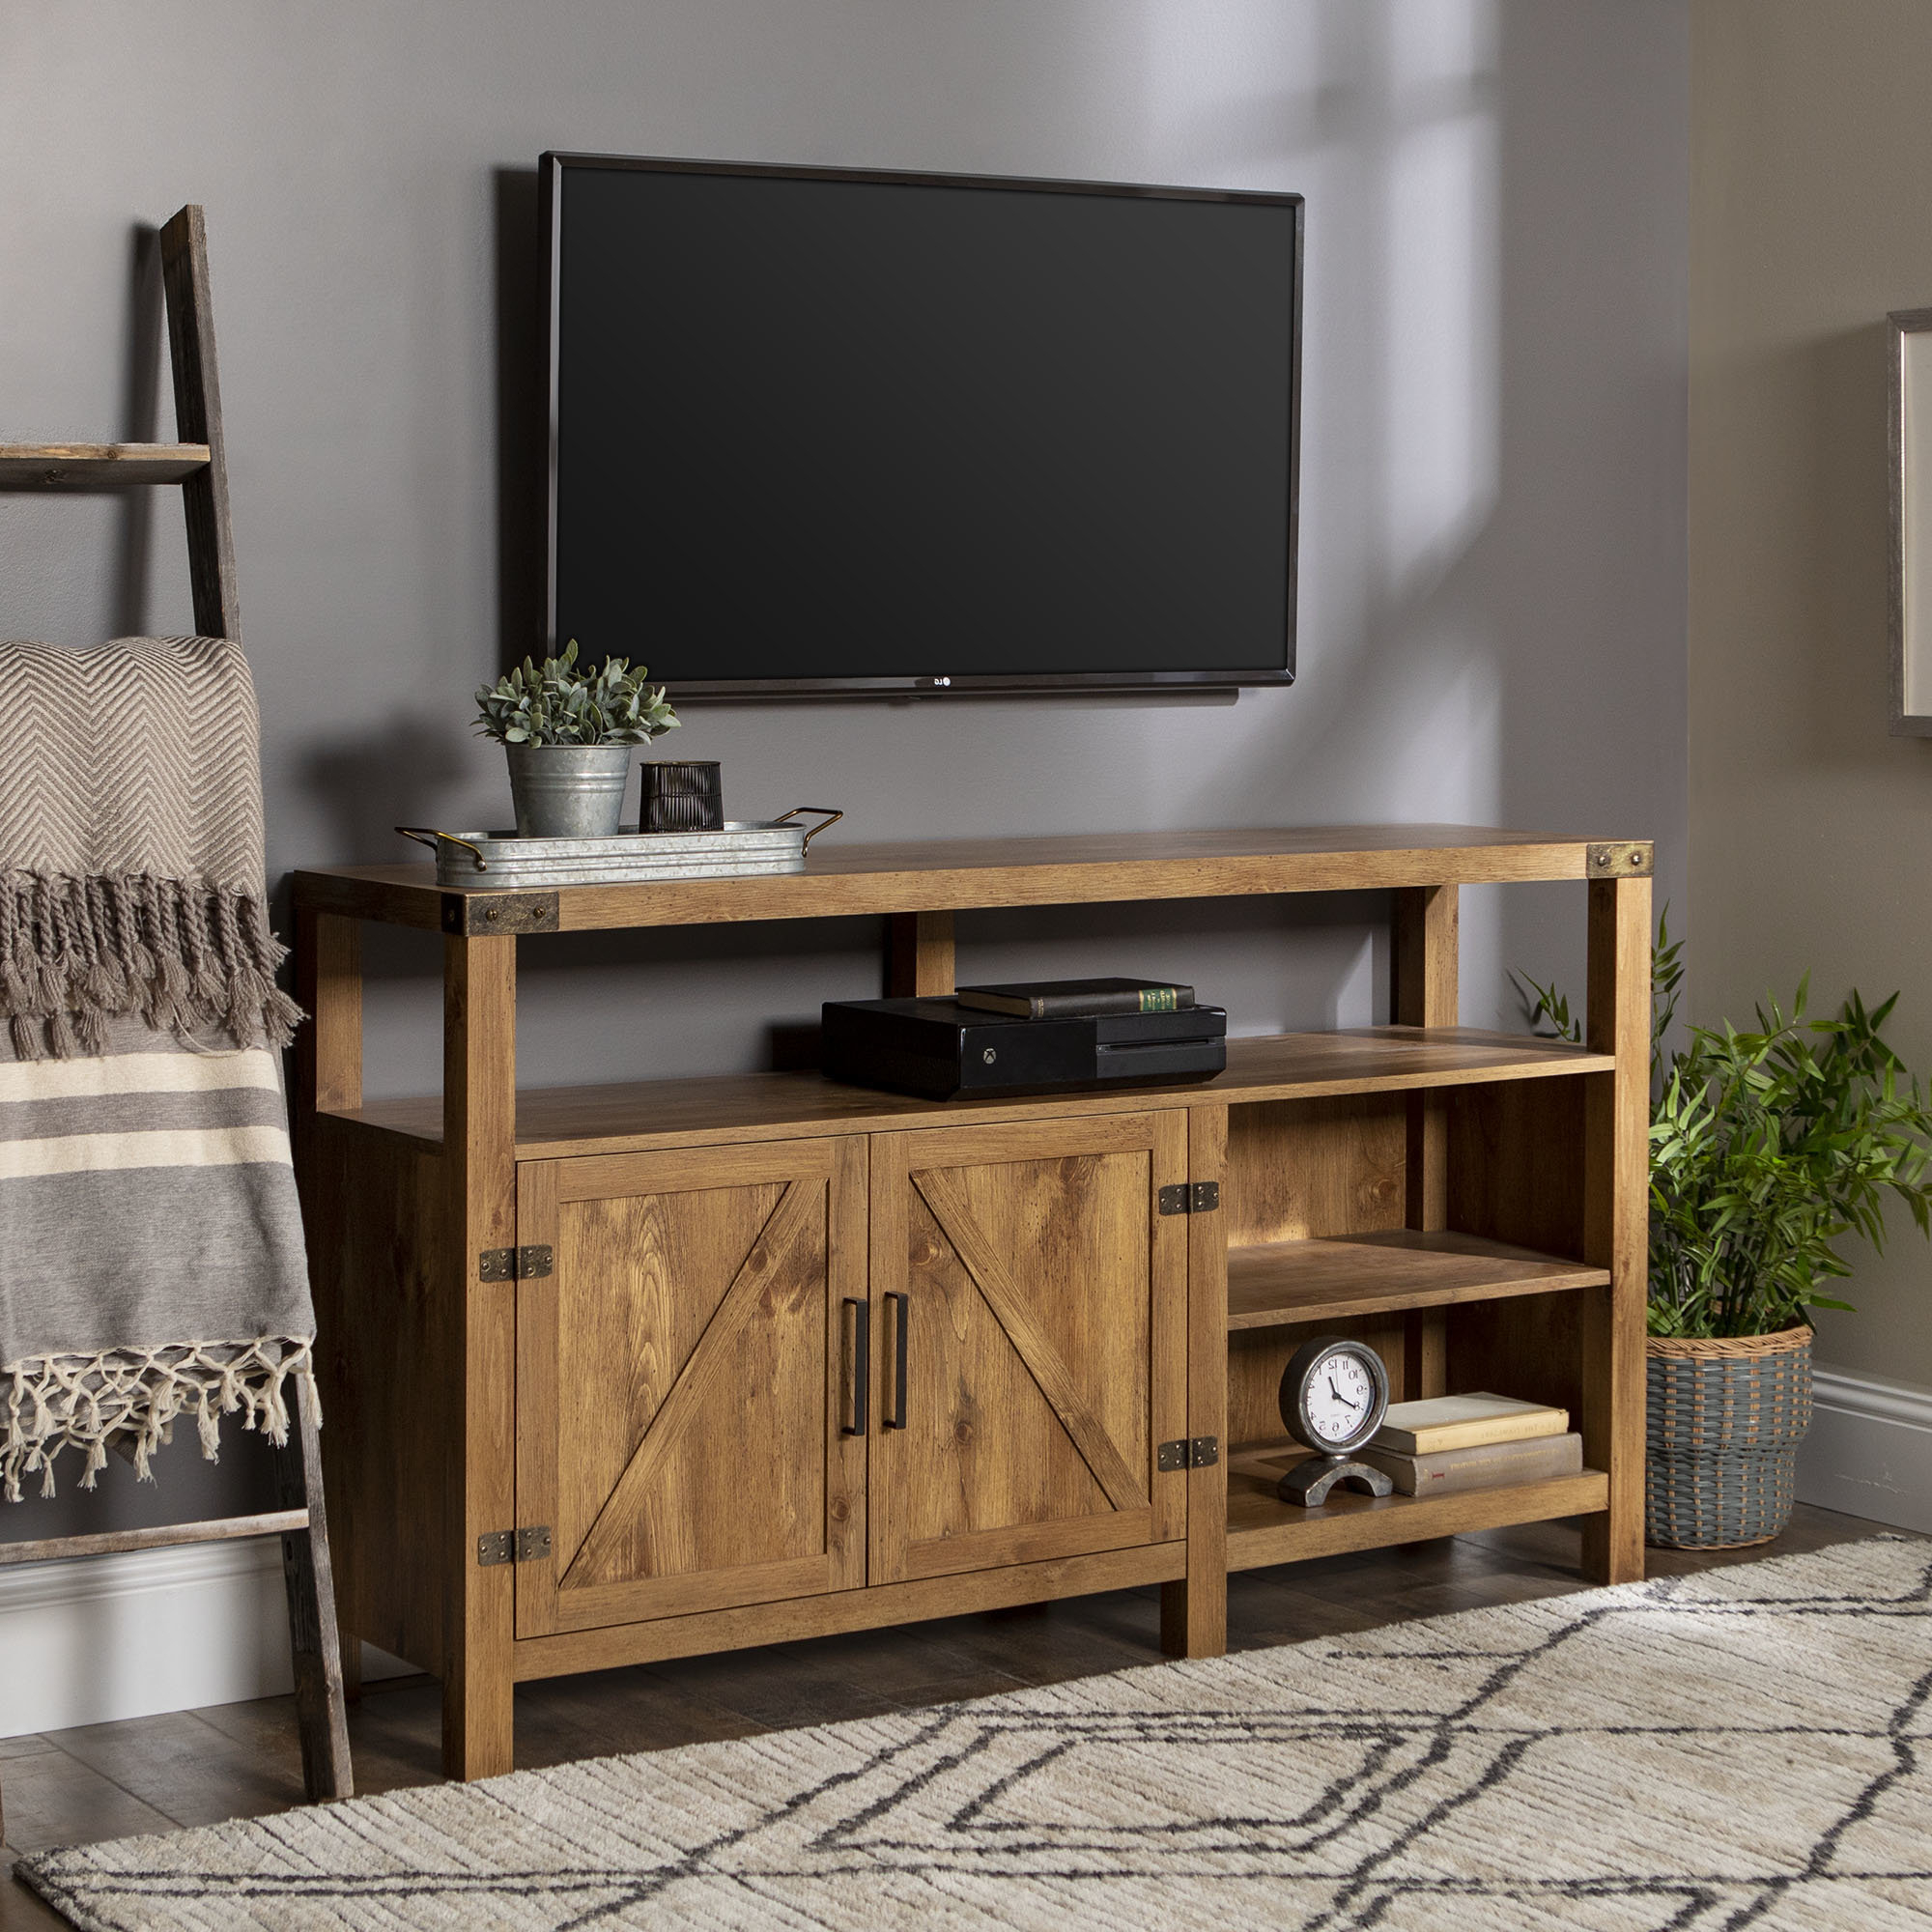 Combs 63 Inch Tv Stands Throughout Popular End Table And Tv Stand Set (View 4 of 20)